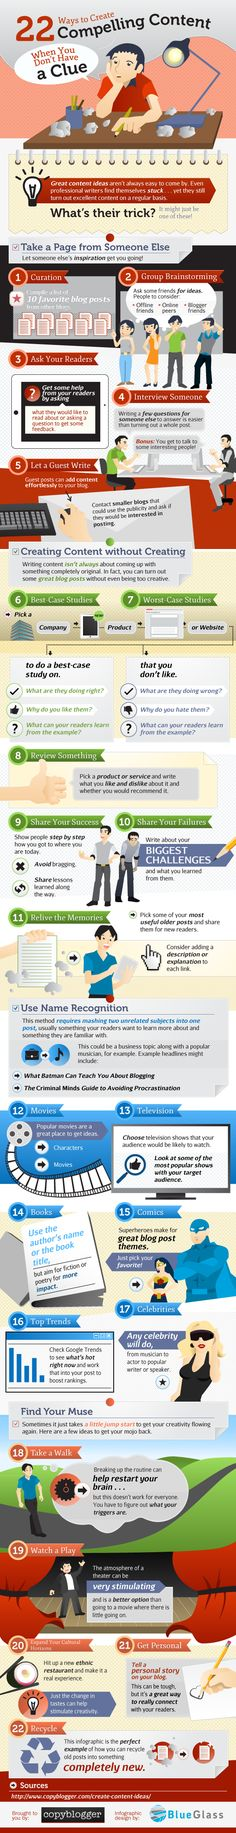 This is a blogging/content Infographic... but is SO pertinent to every social media marketer/company out there. It's all about consistently generating and sharing TOP quality content... then ENGAGING with your community over that content!! :)